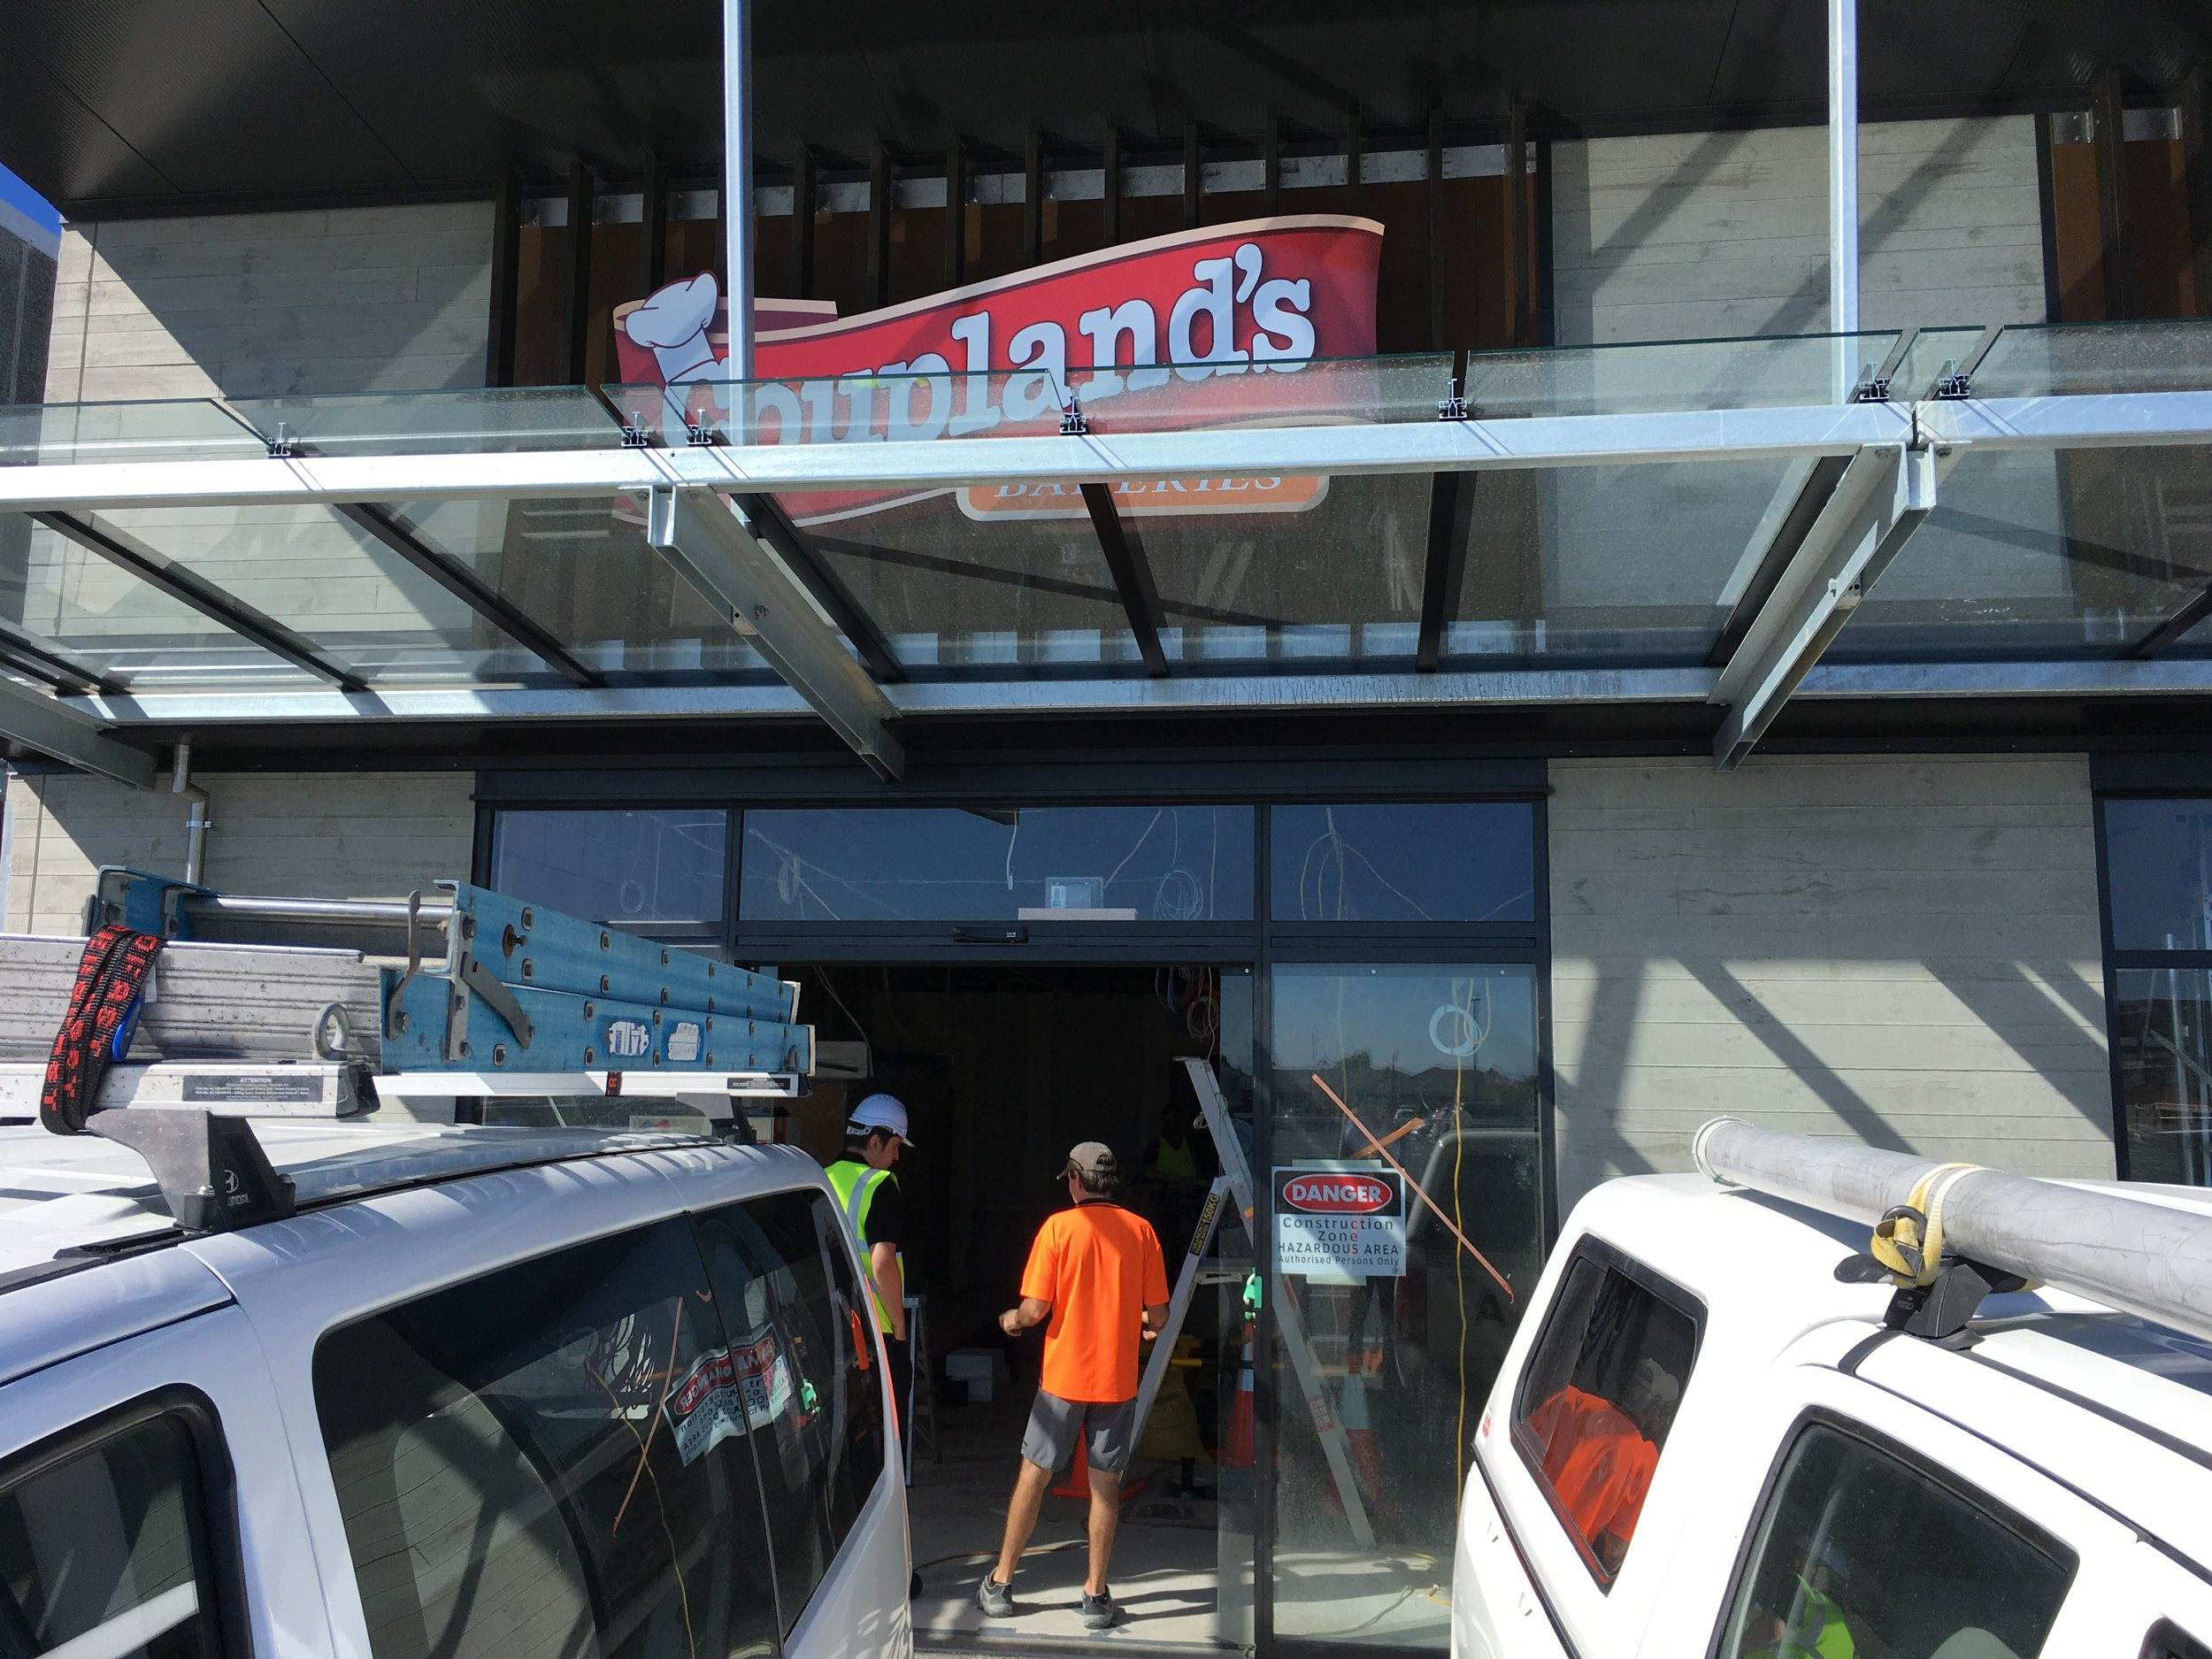 Coupland's new store in Rolleston under construction